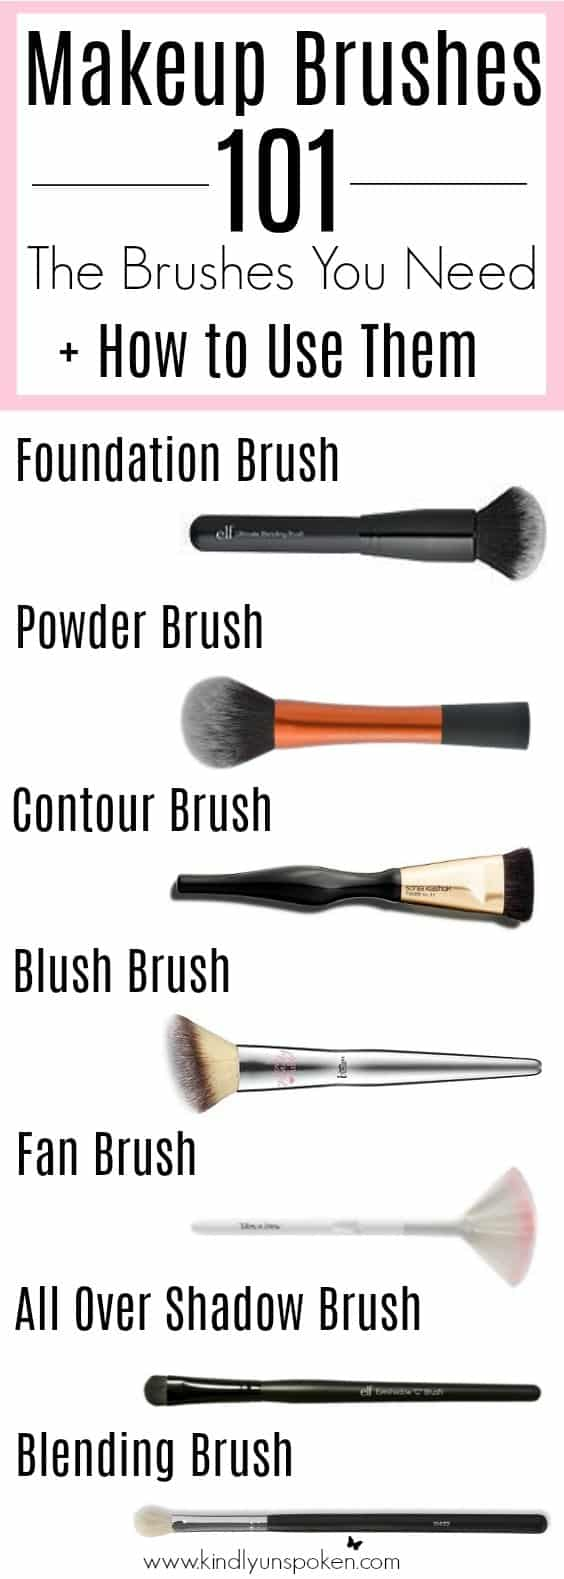 The Ultimate Makeup Brush Buying Guide- We're Covering Makeup 101 in sharing The Best Brushes You Really Need In Your Makeup Collection And How to Use Them!